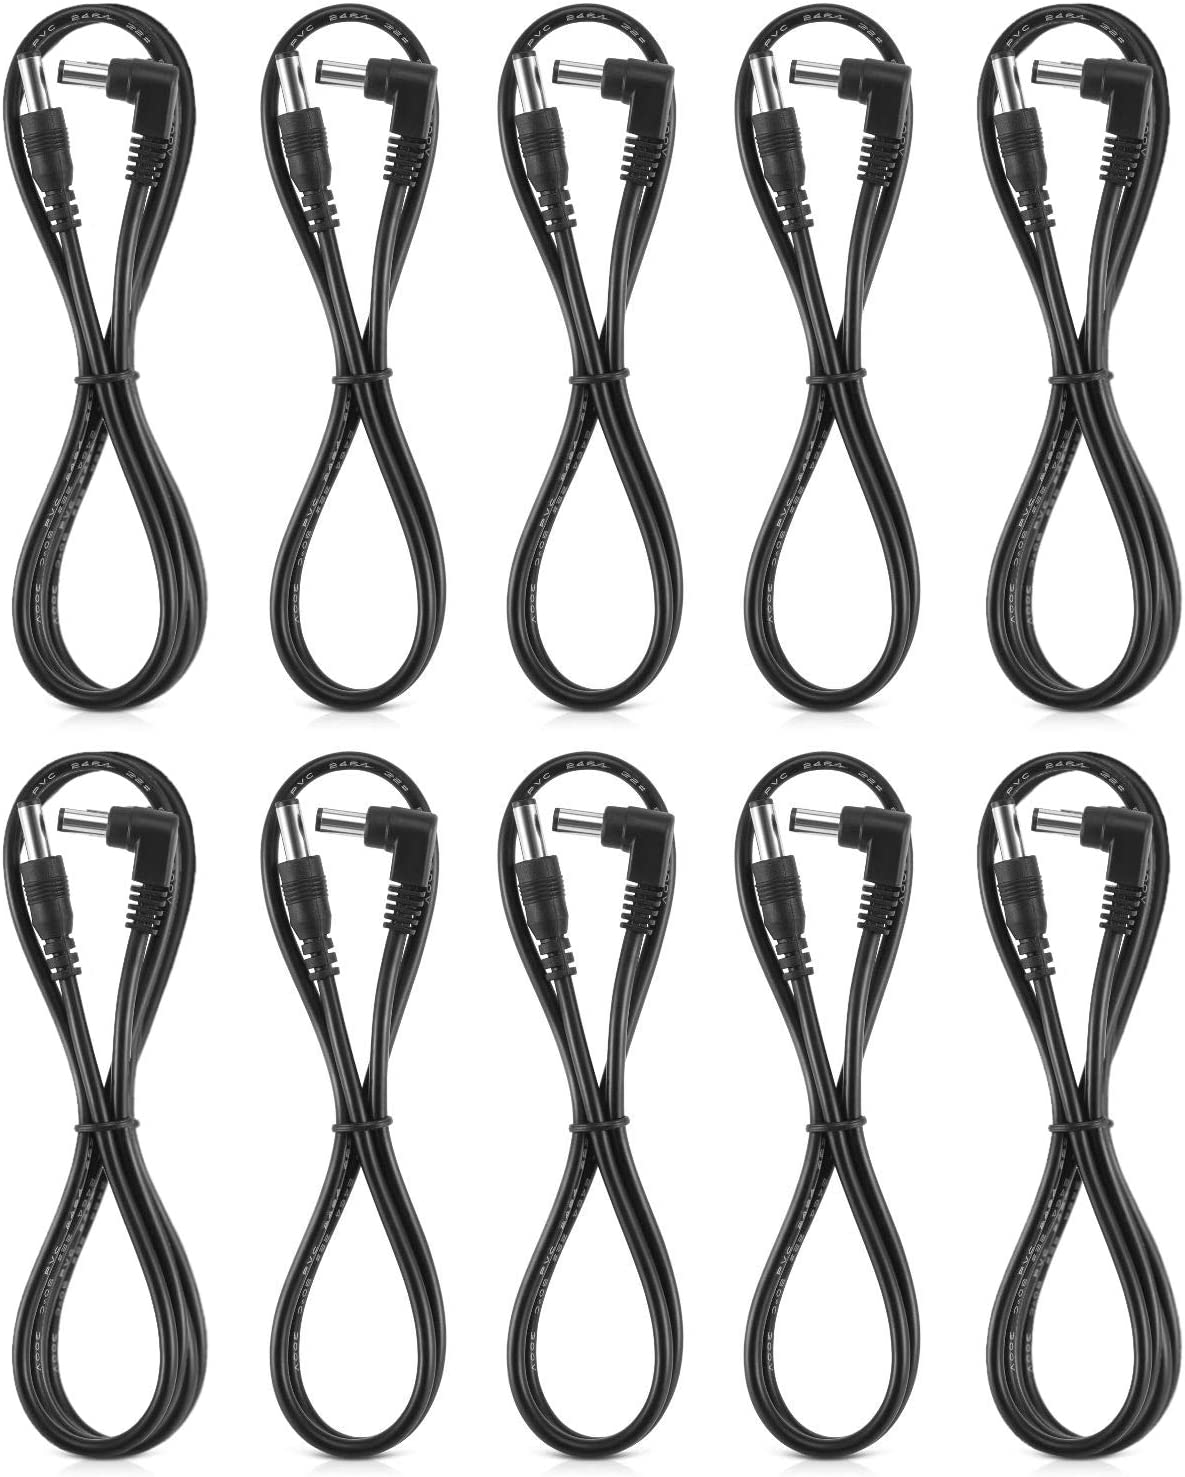 Donner Guitar Effects Pedal DC Power Cable Patch Cords, Including 60CM 6-Pack and 80CM 4-Pack